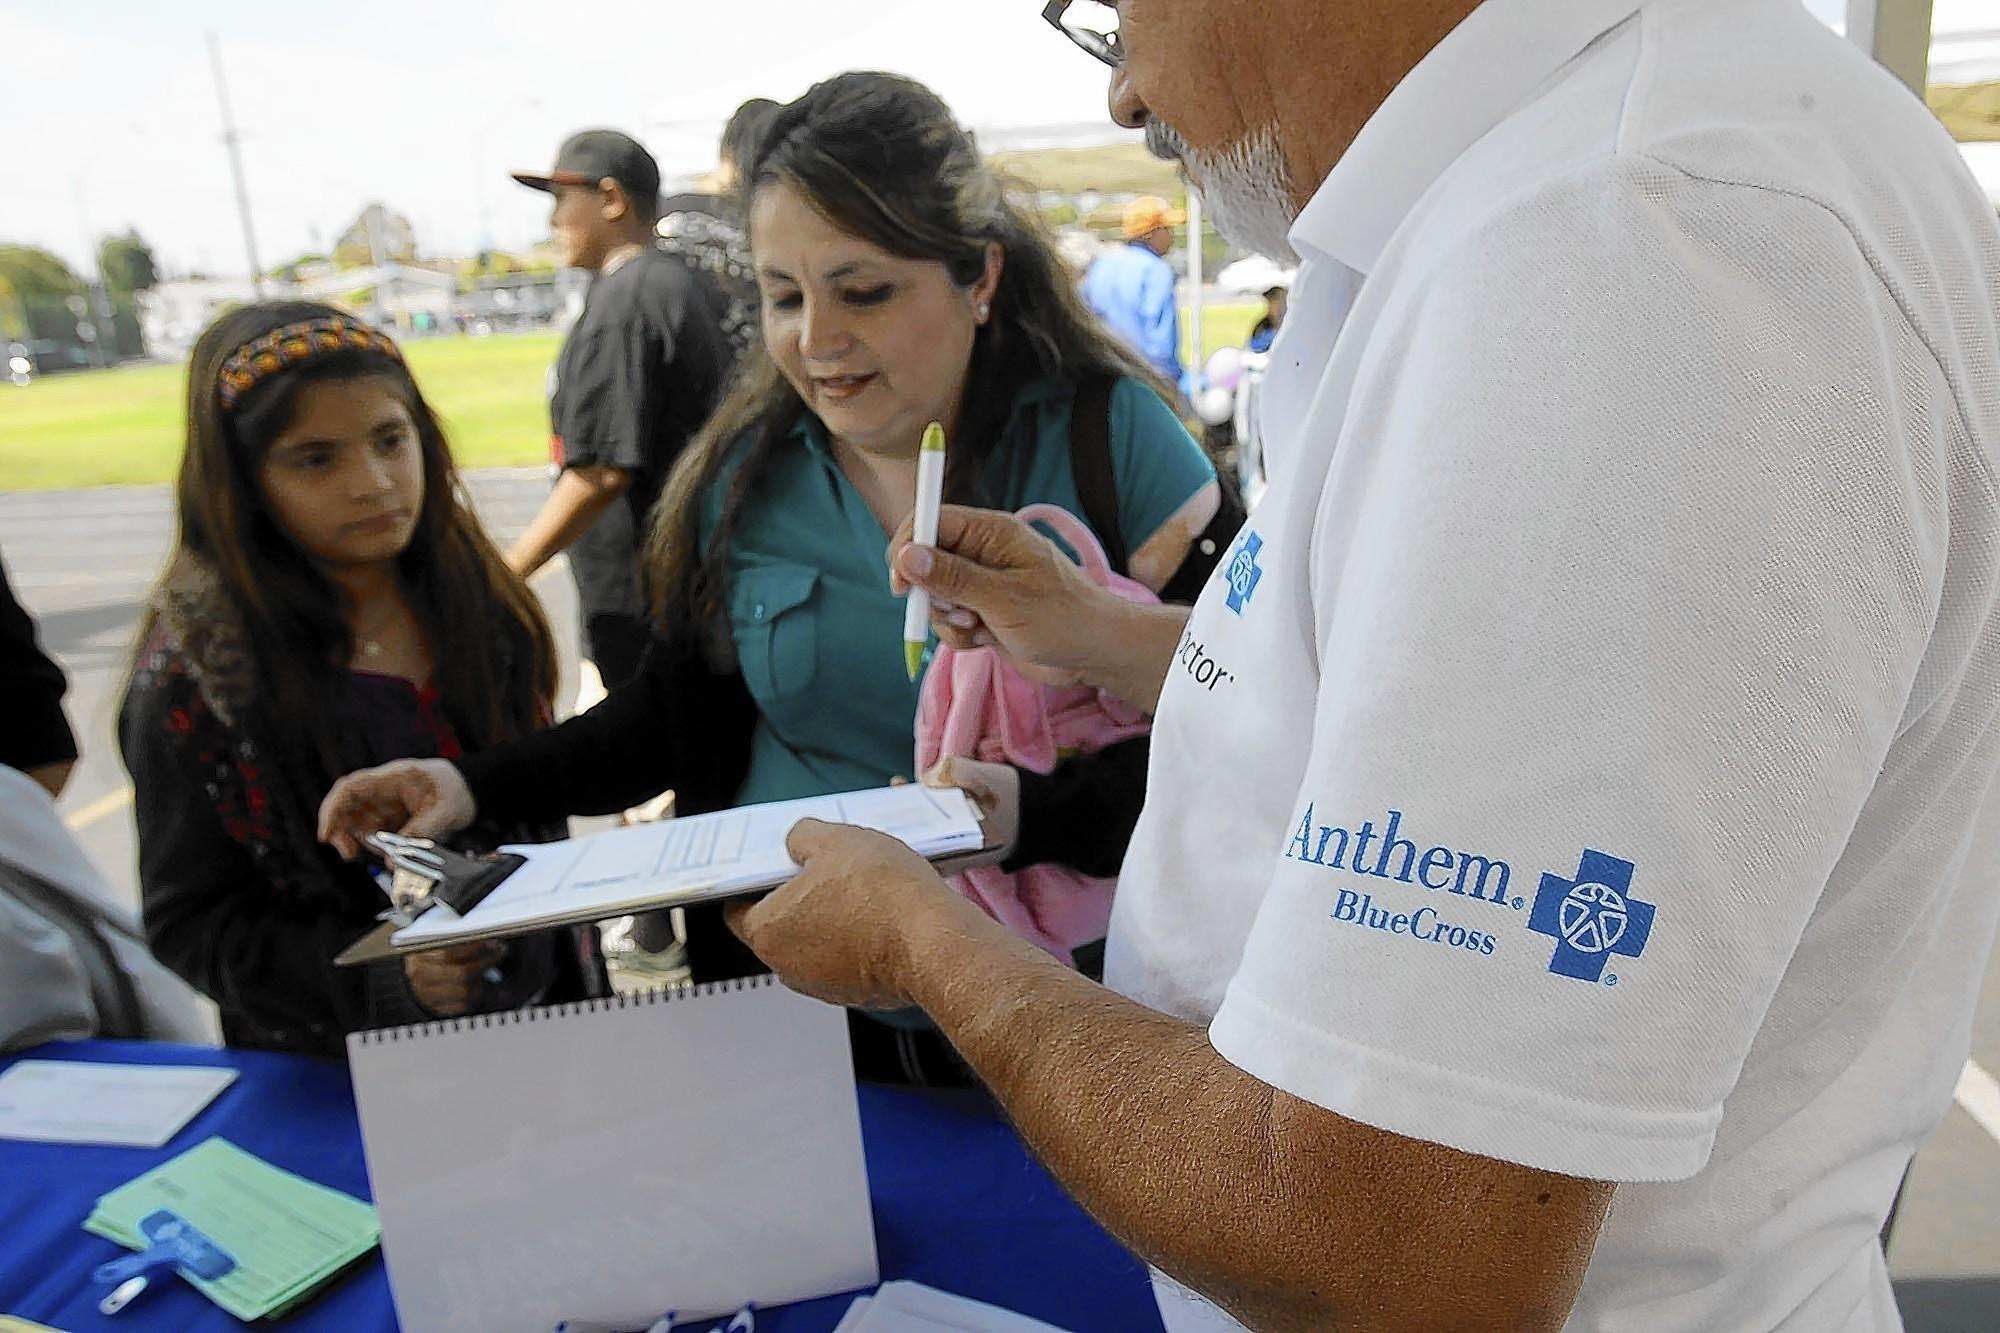 Insurance giant Anthem Blue Cross signed up 425,058 people through April 15, or 30.5% of Covered California's exchange market under the Affordable Care Act, new data show. Above, an Anthem booth at an East Los Angeles health fair last year.